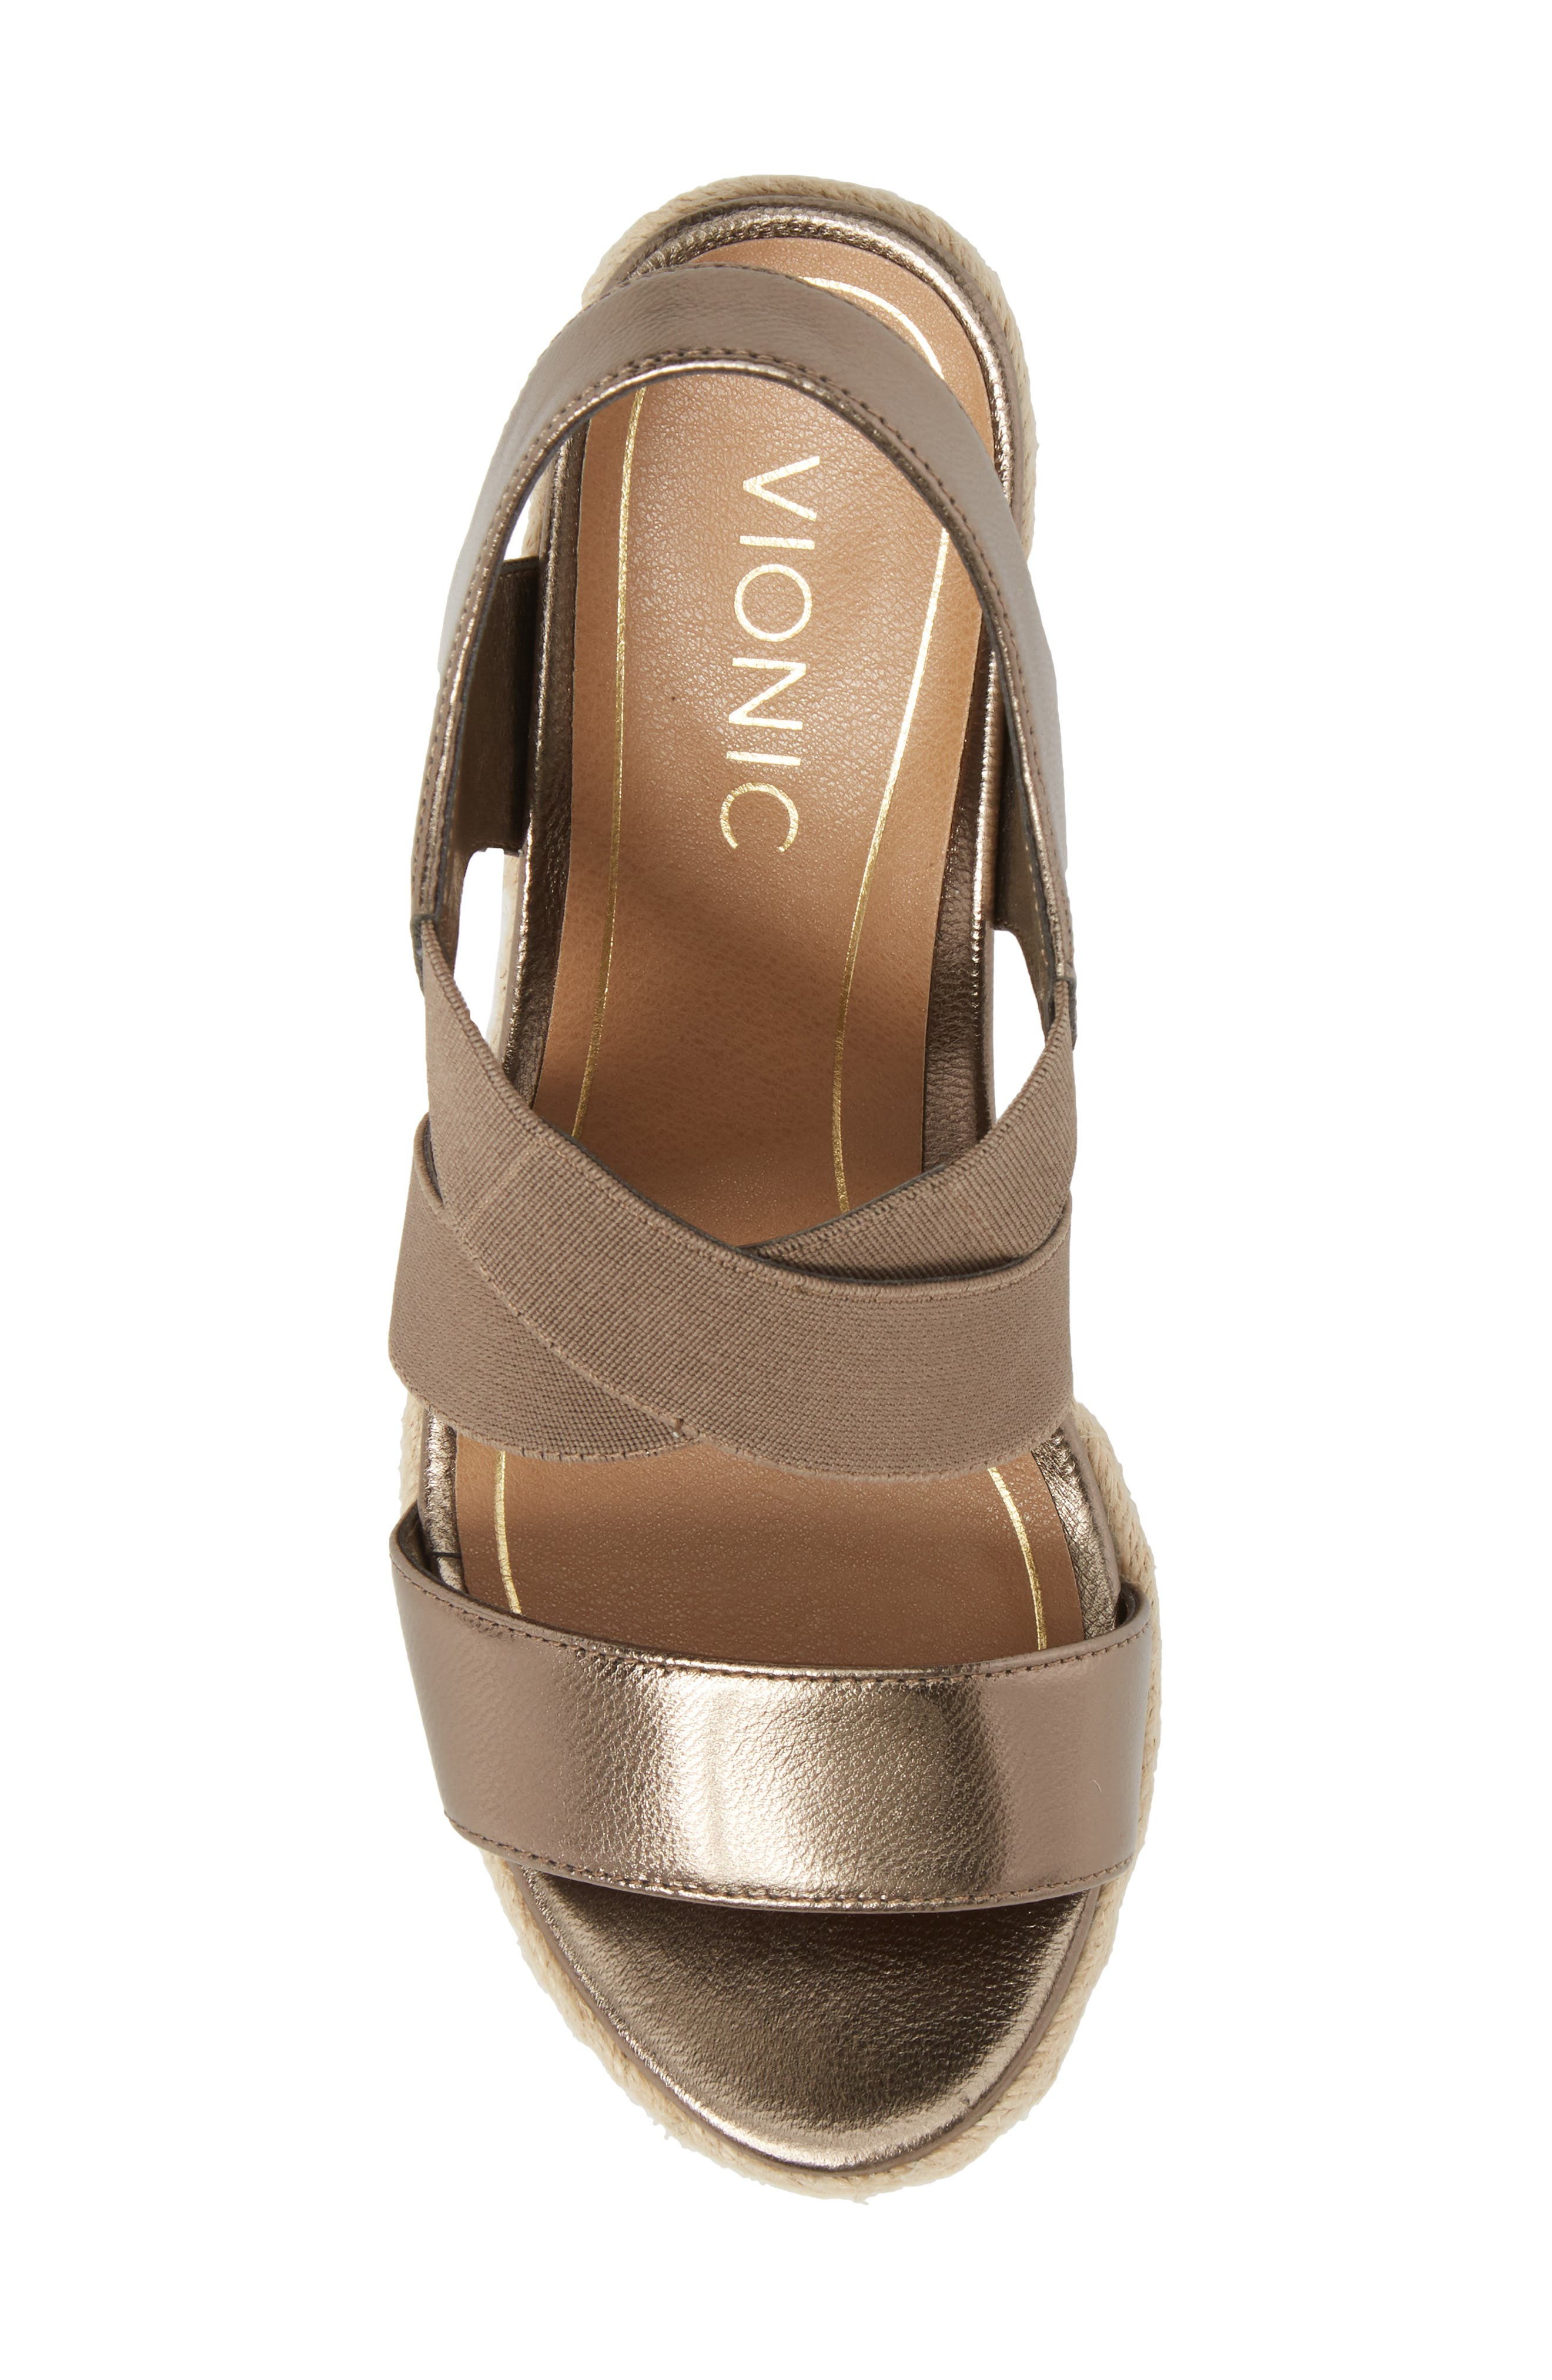 Ainsleigh Wedge Sandal,                             Alternate thumbnail 5, color,                             Dark Taupe Leather